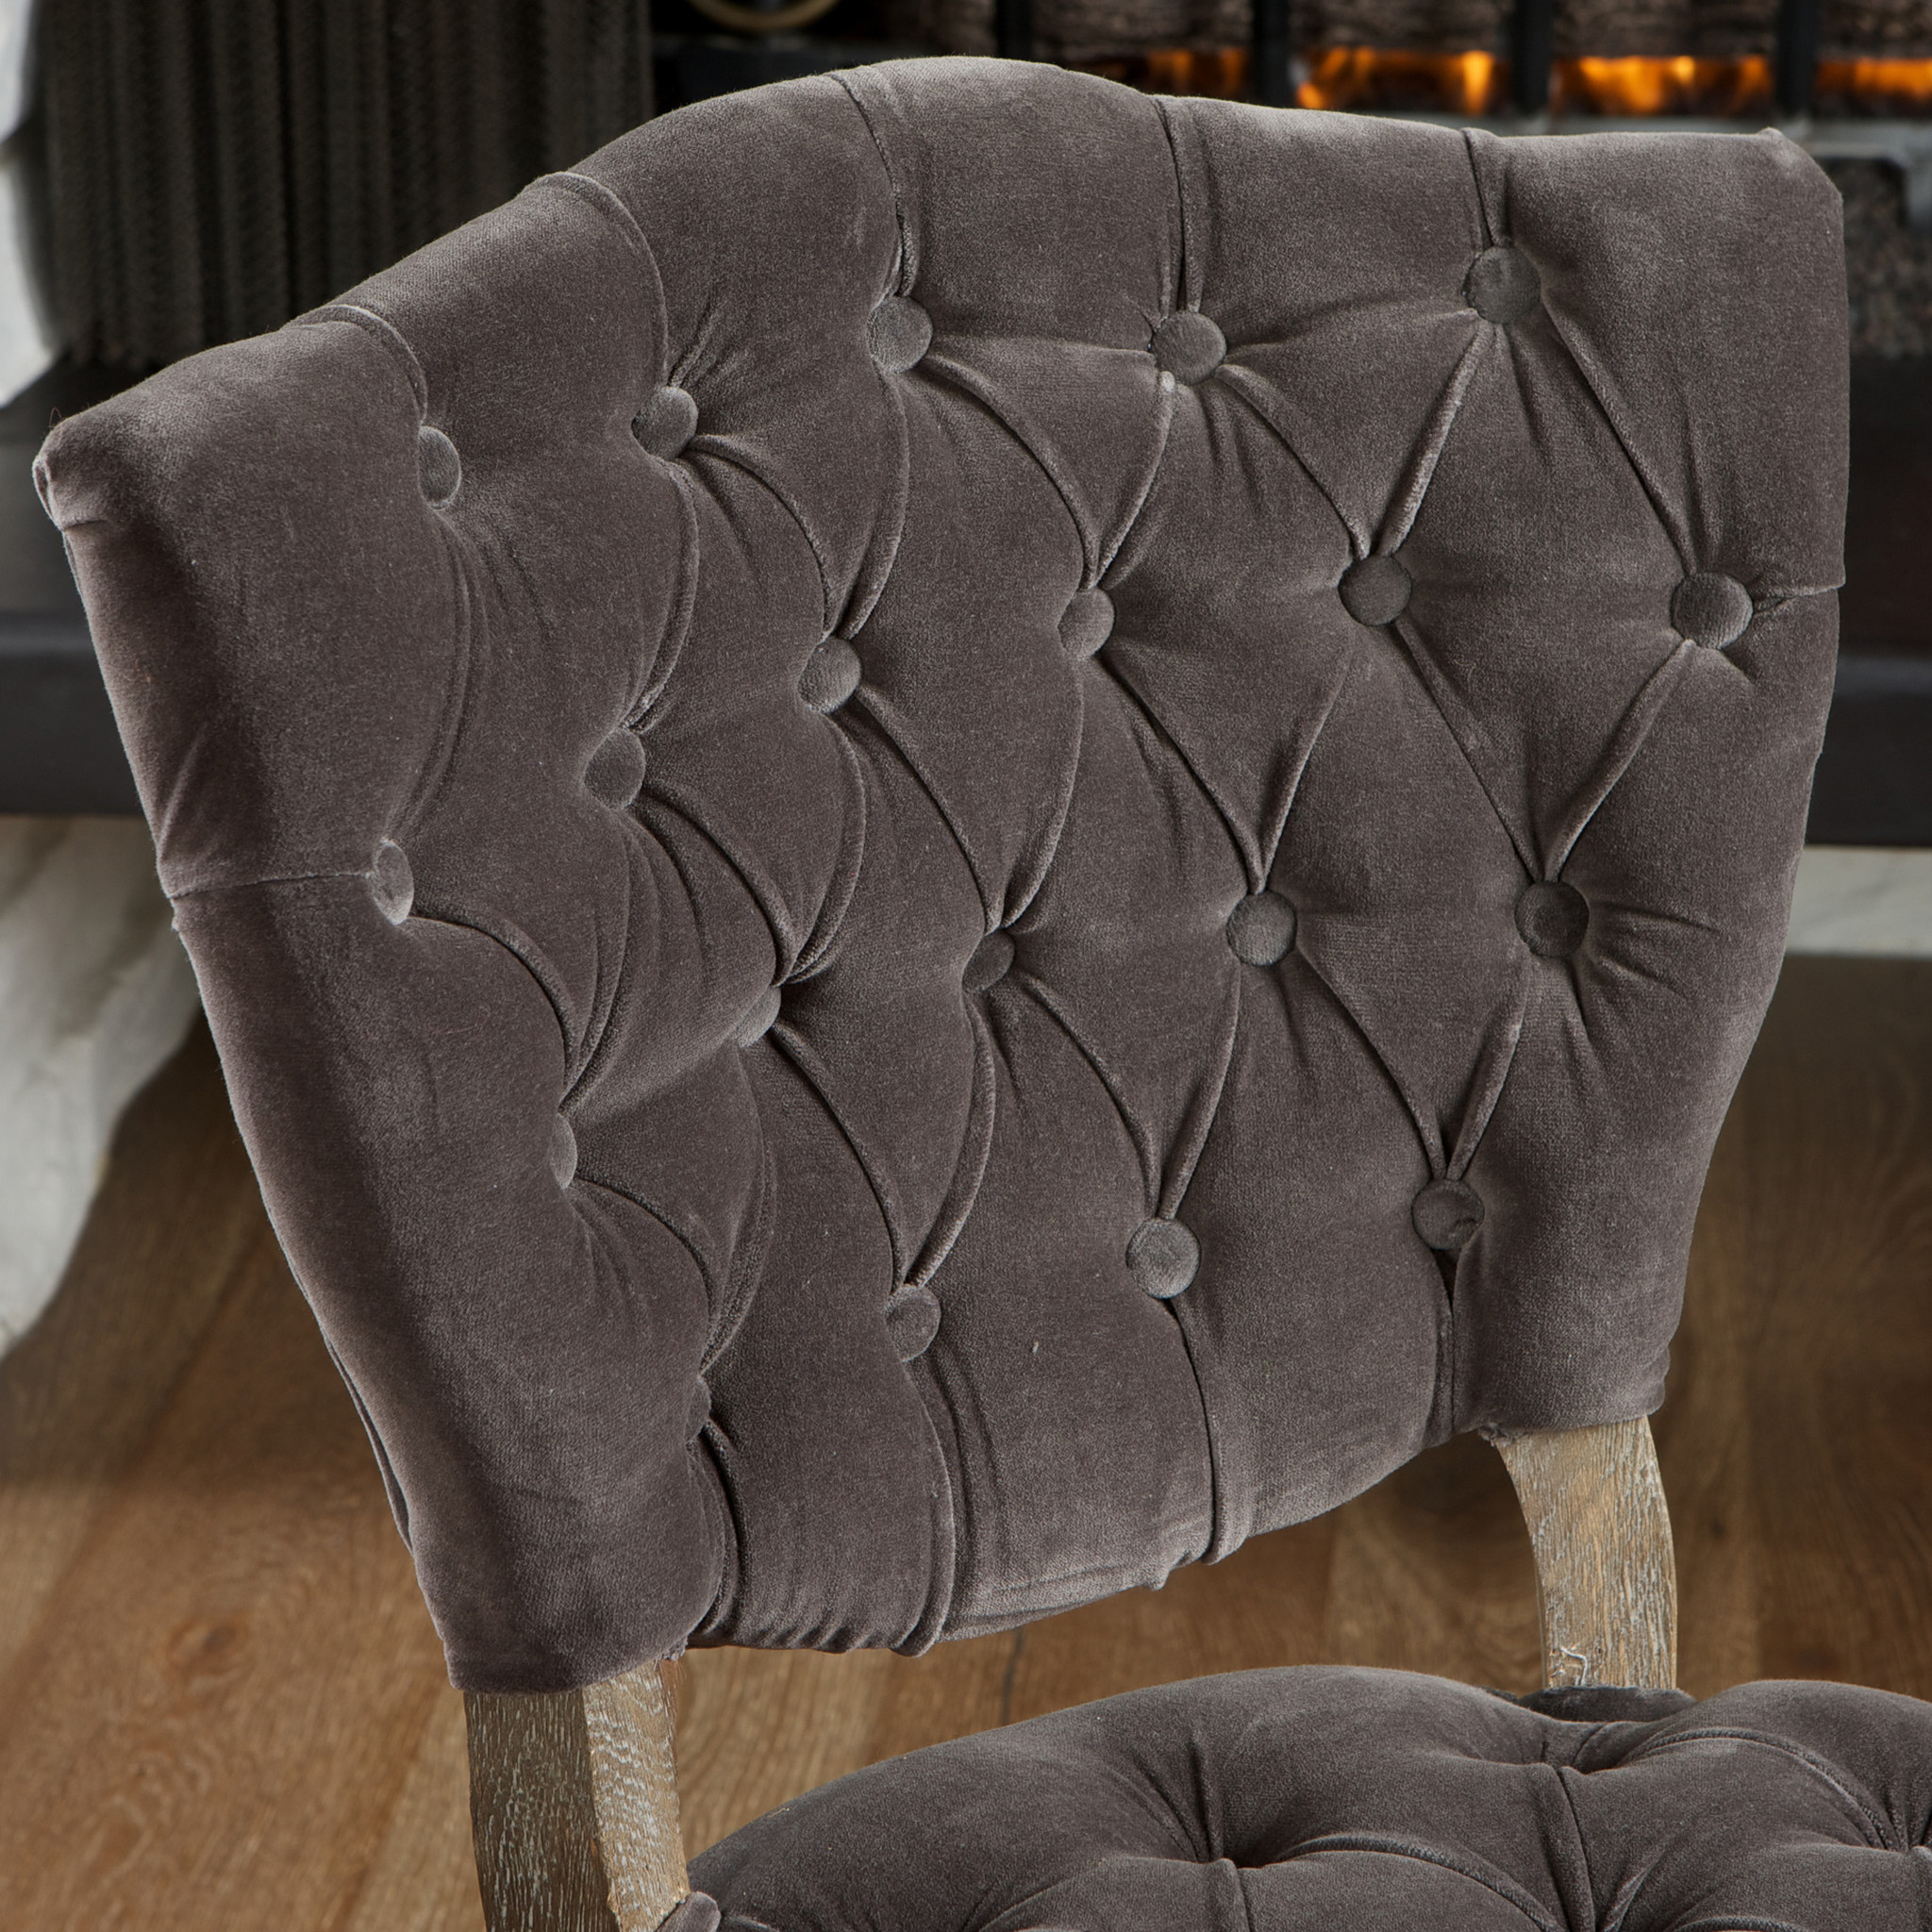 Purple Dining Chairs | Tufted Nailhead Dining Chair | Tufted Dining Chair